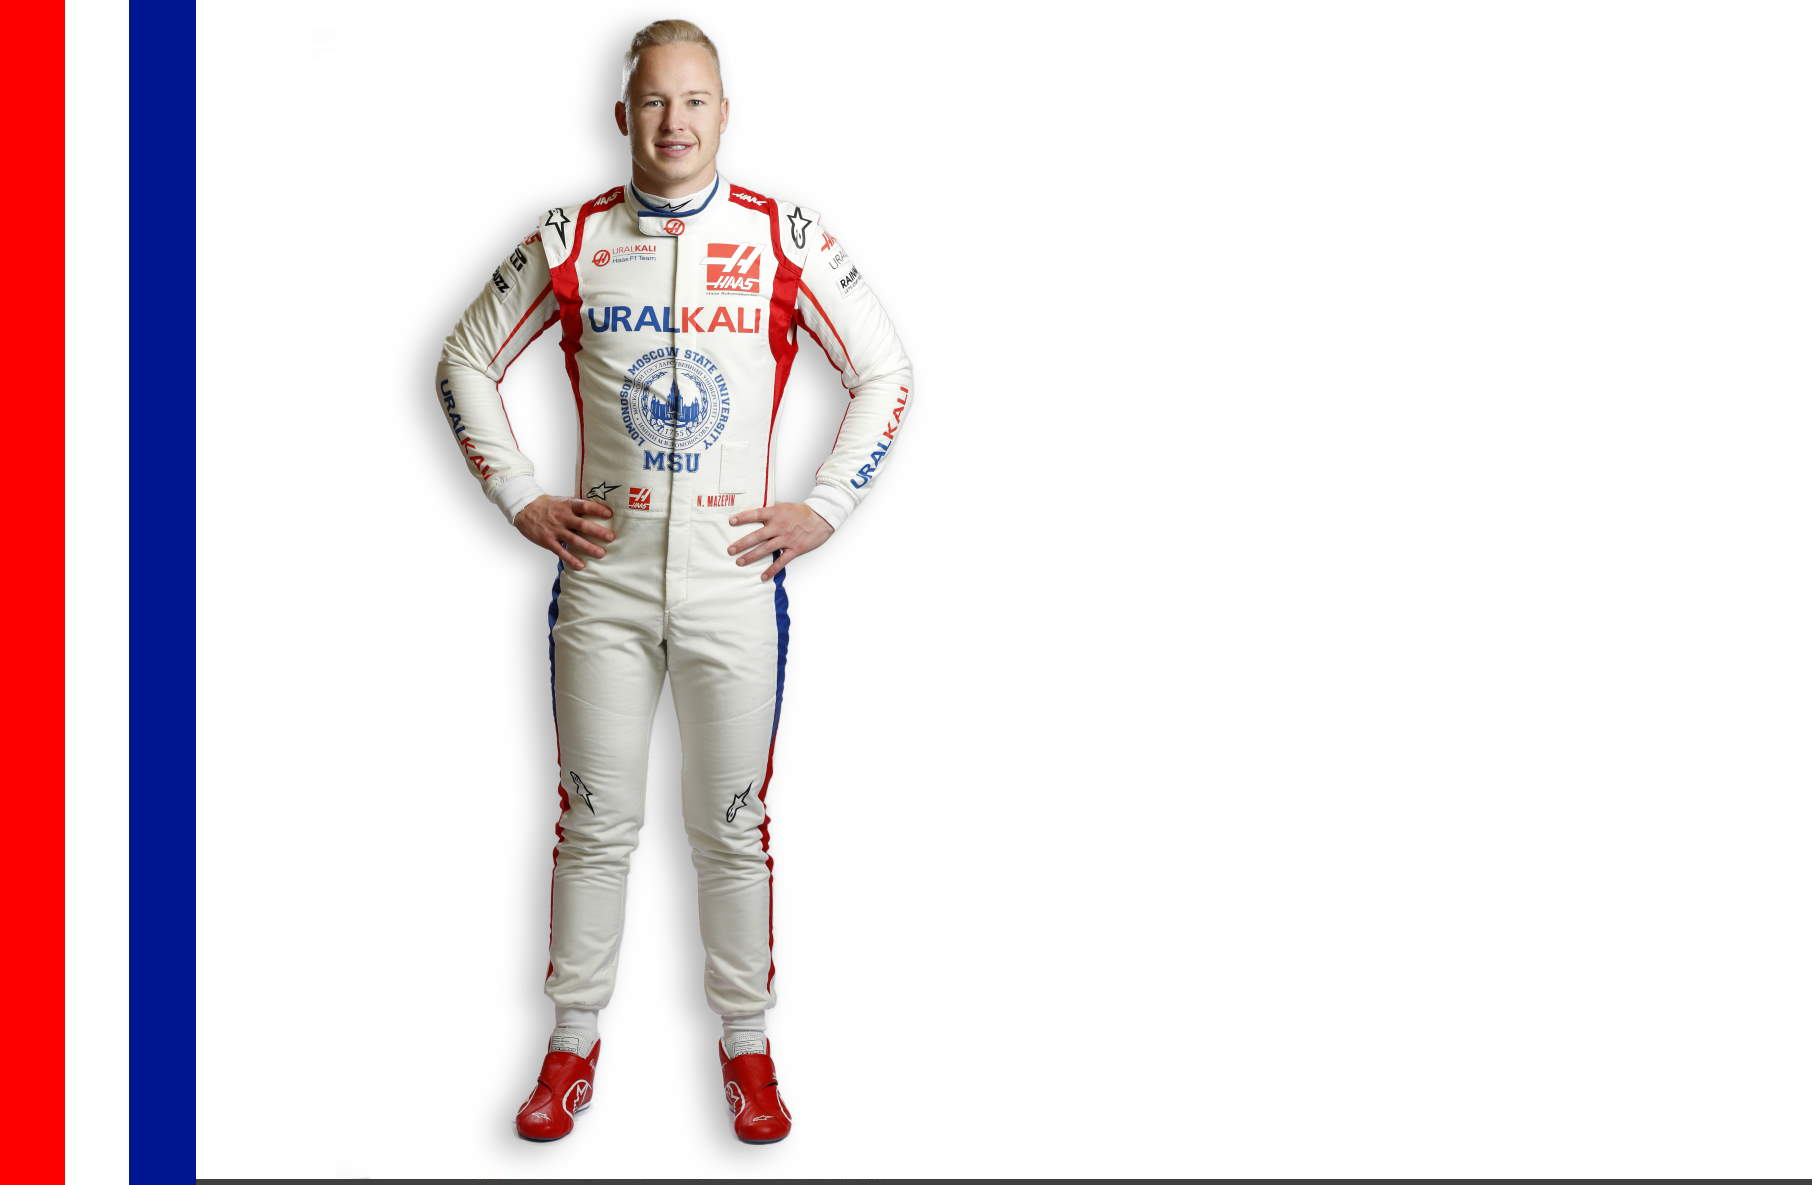 Nikita Mazepin F1 2021 profile picture full size new colours Photo Haas F1 Team Edited by MAXF1net